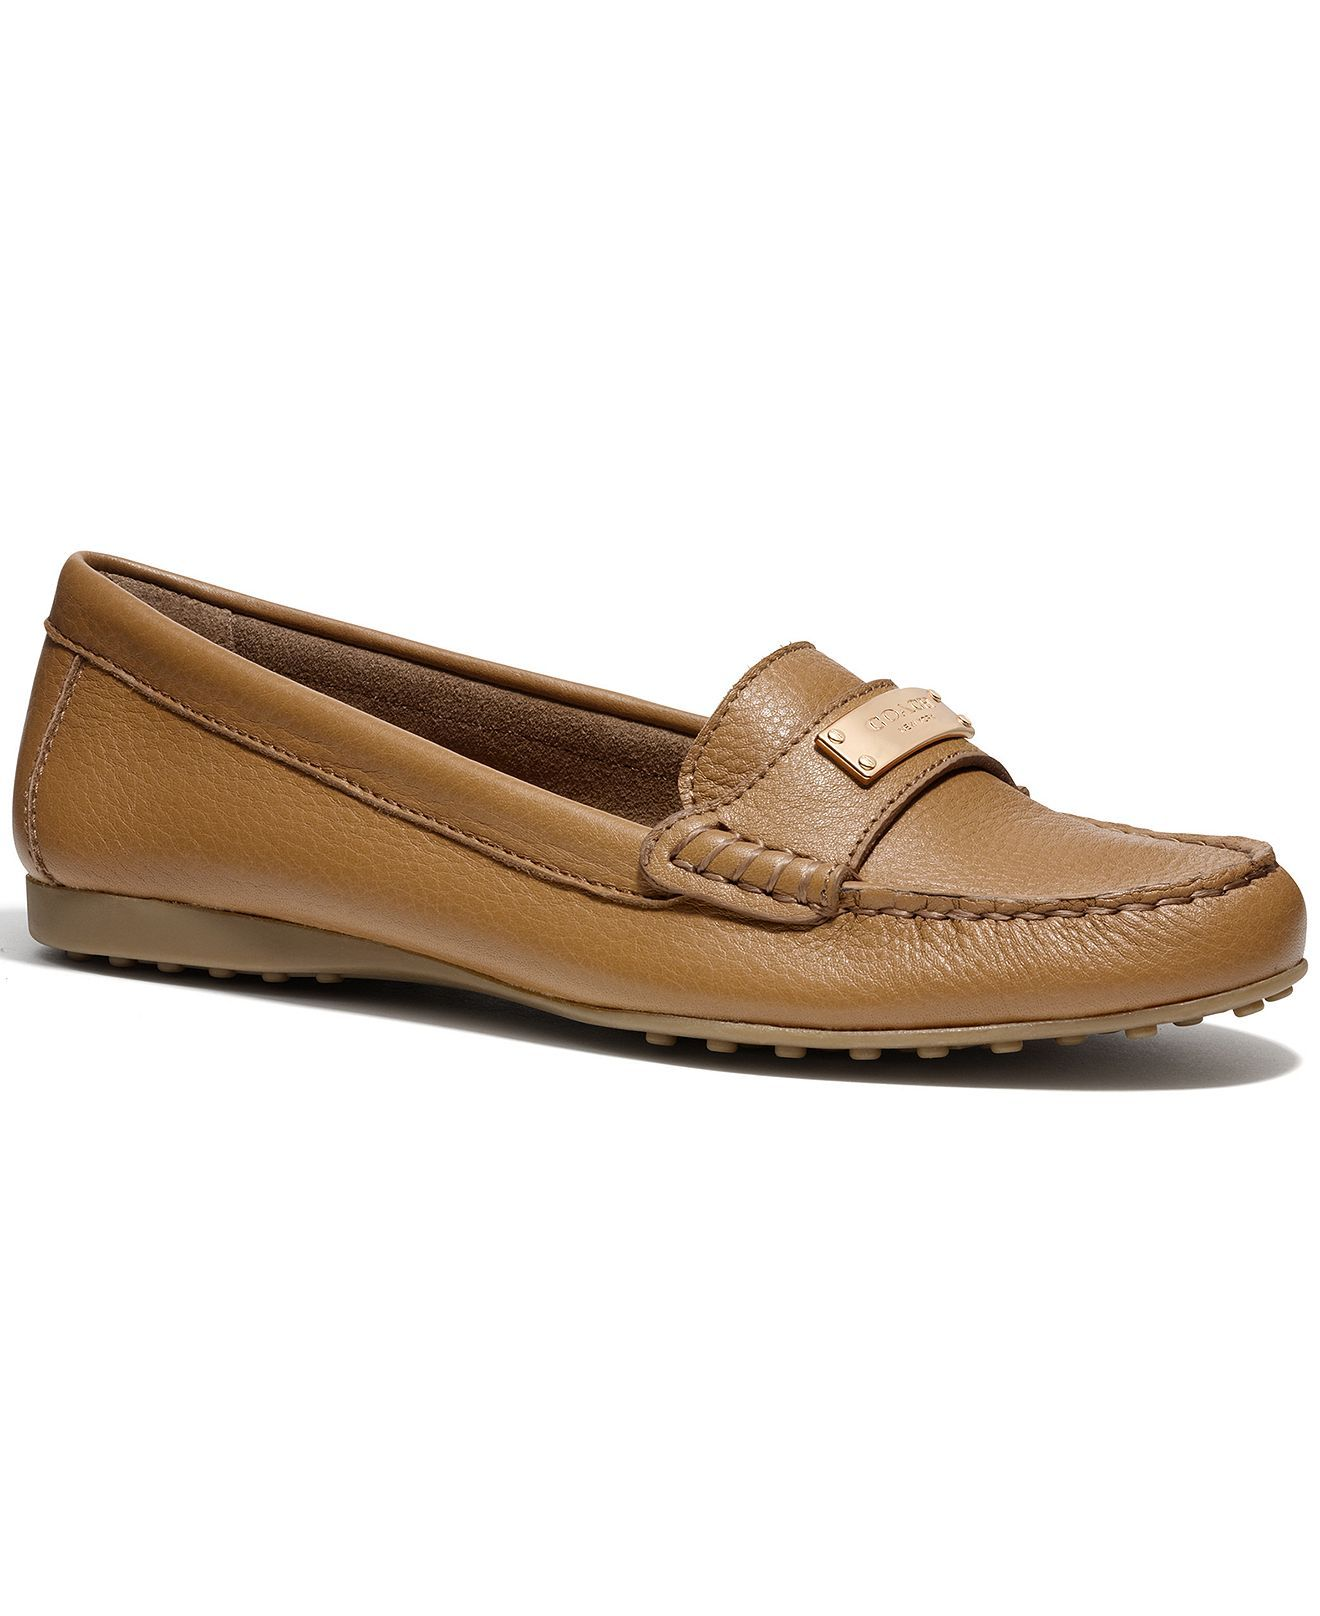 COACH FREDRICA LOAFER - Flats - Shoes - Macy's  39ccd07a8c60